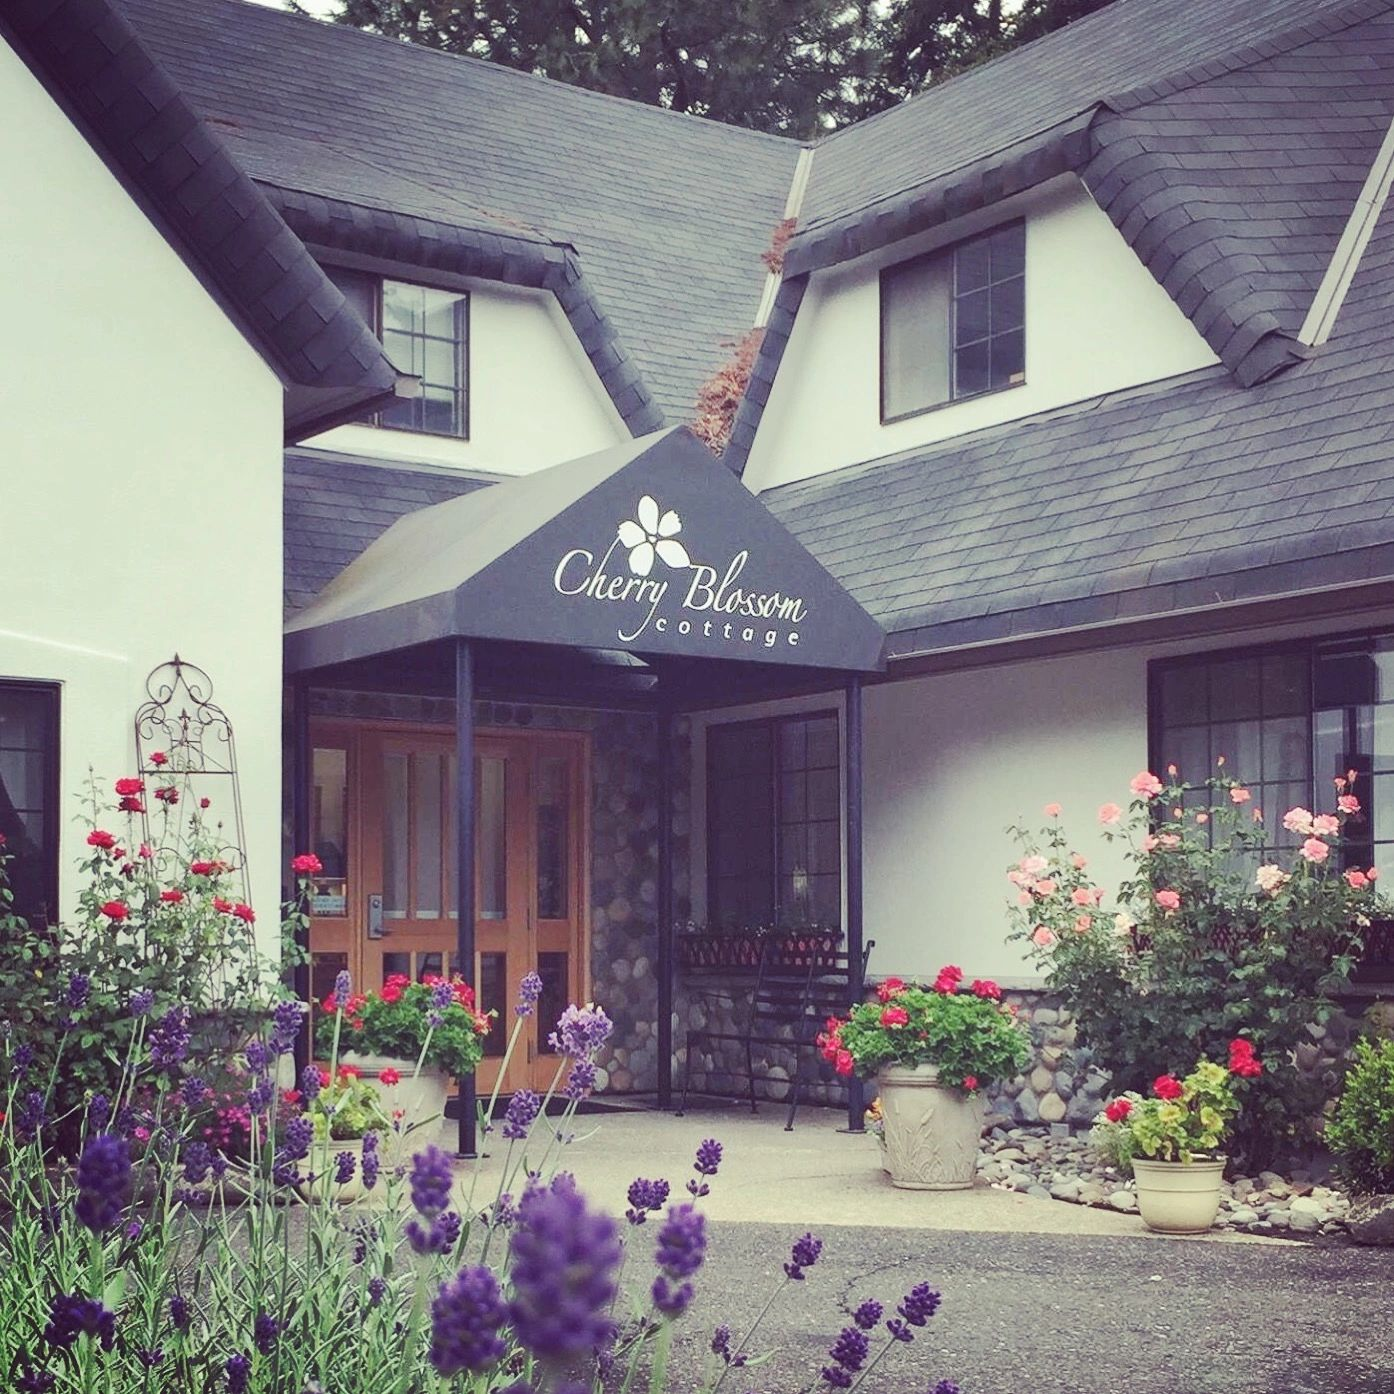 A photo of Cherry Blossom Cottage's front exterior.